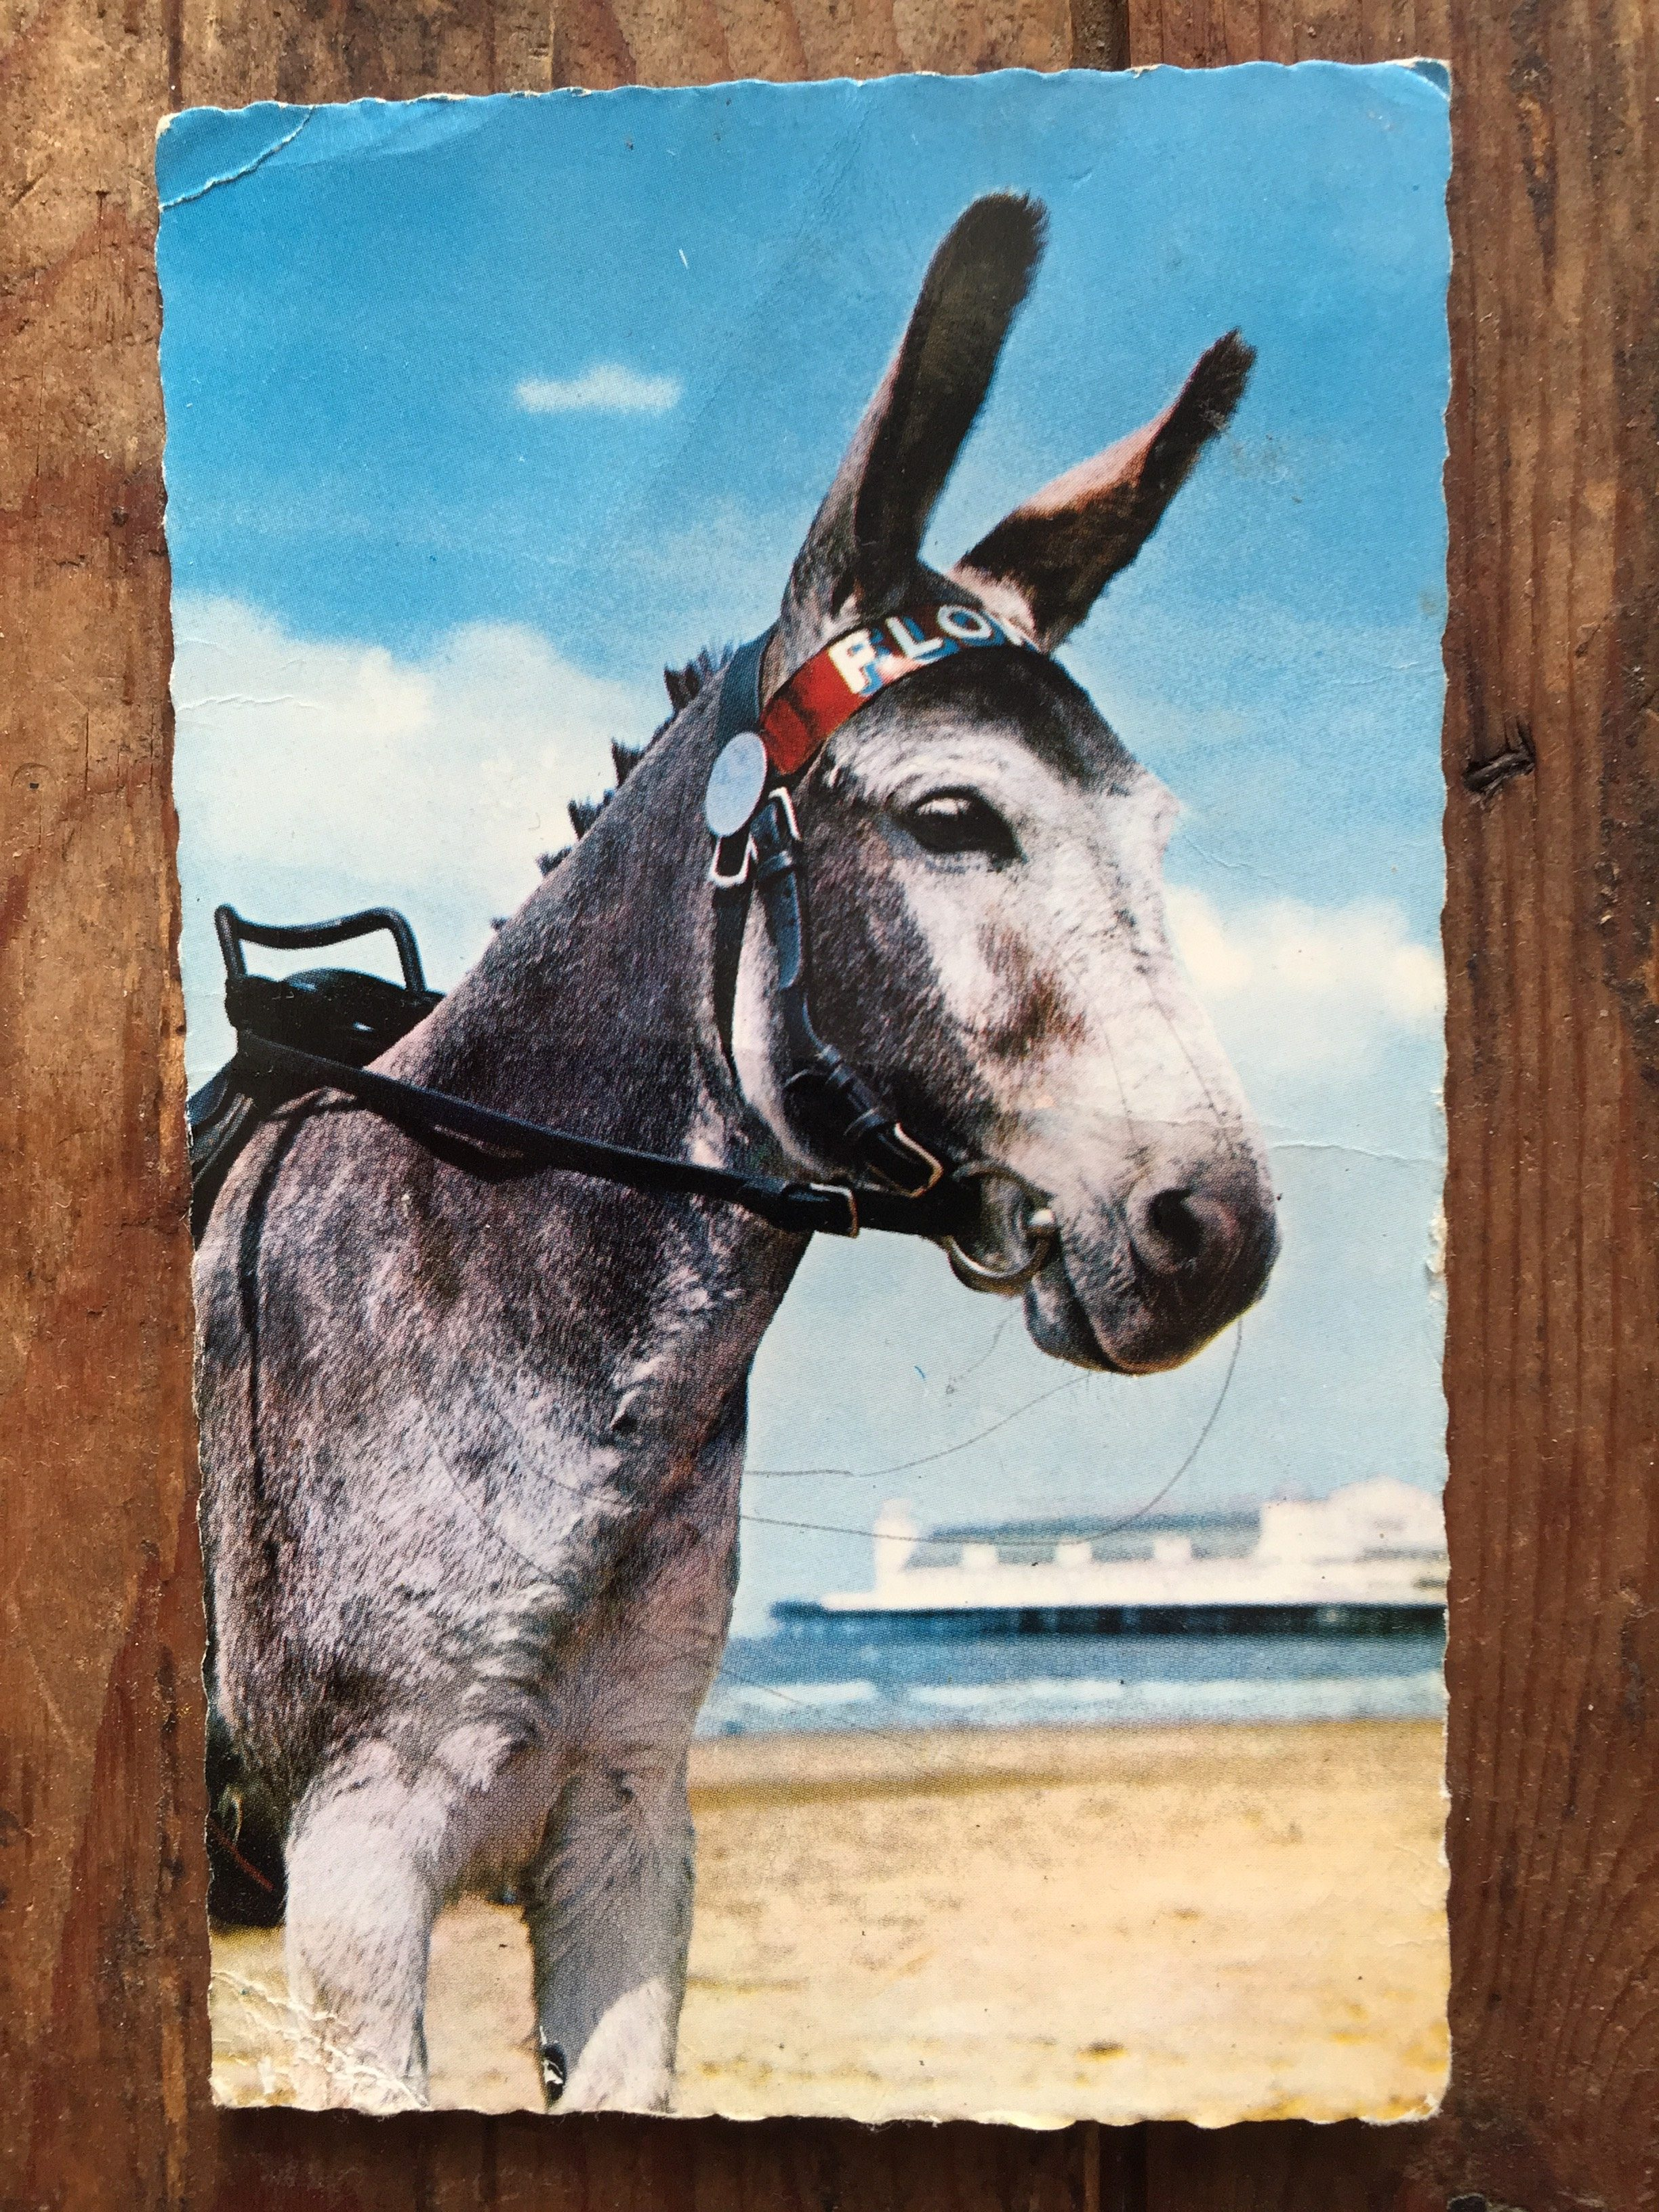 When I was a child, my grandma took me to see the donkeys at Weston-super-Mare. Now I write fundraising copy for The Brooke, the worldwide animal charity.